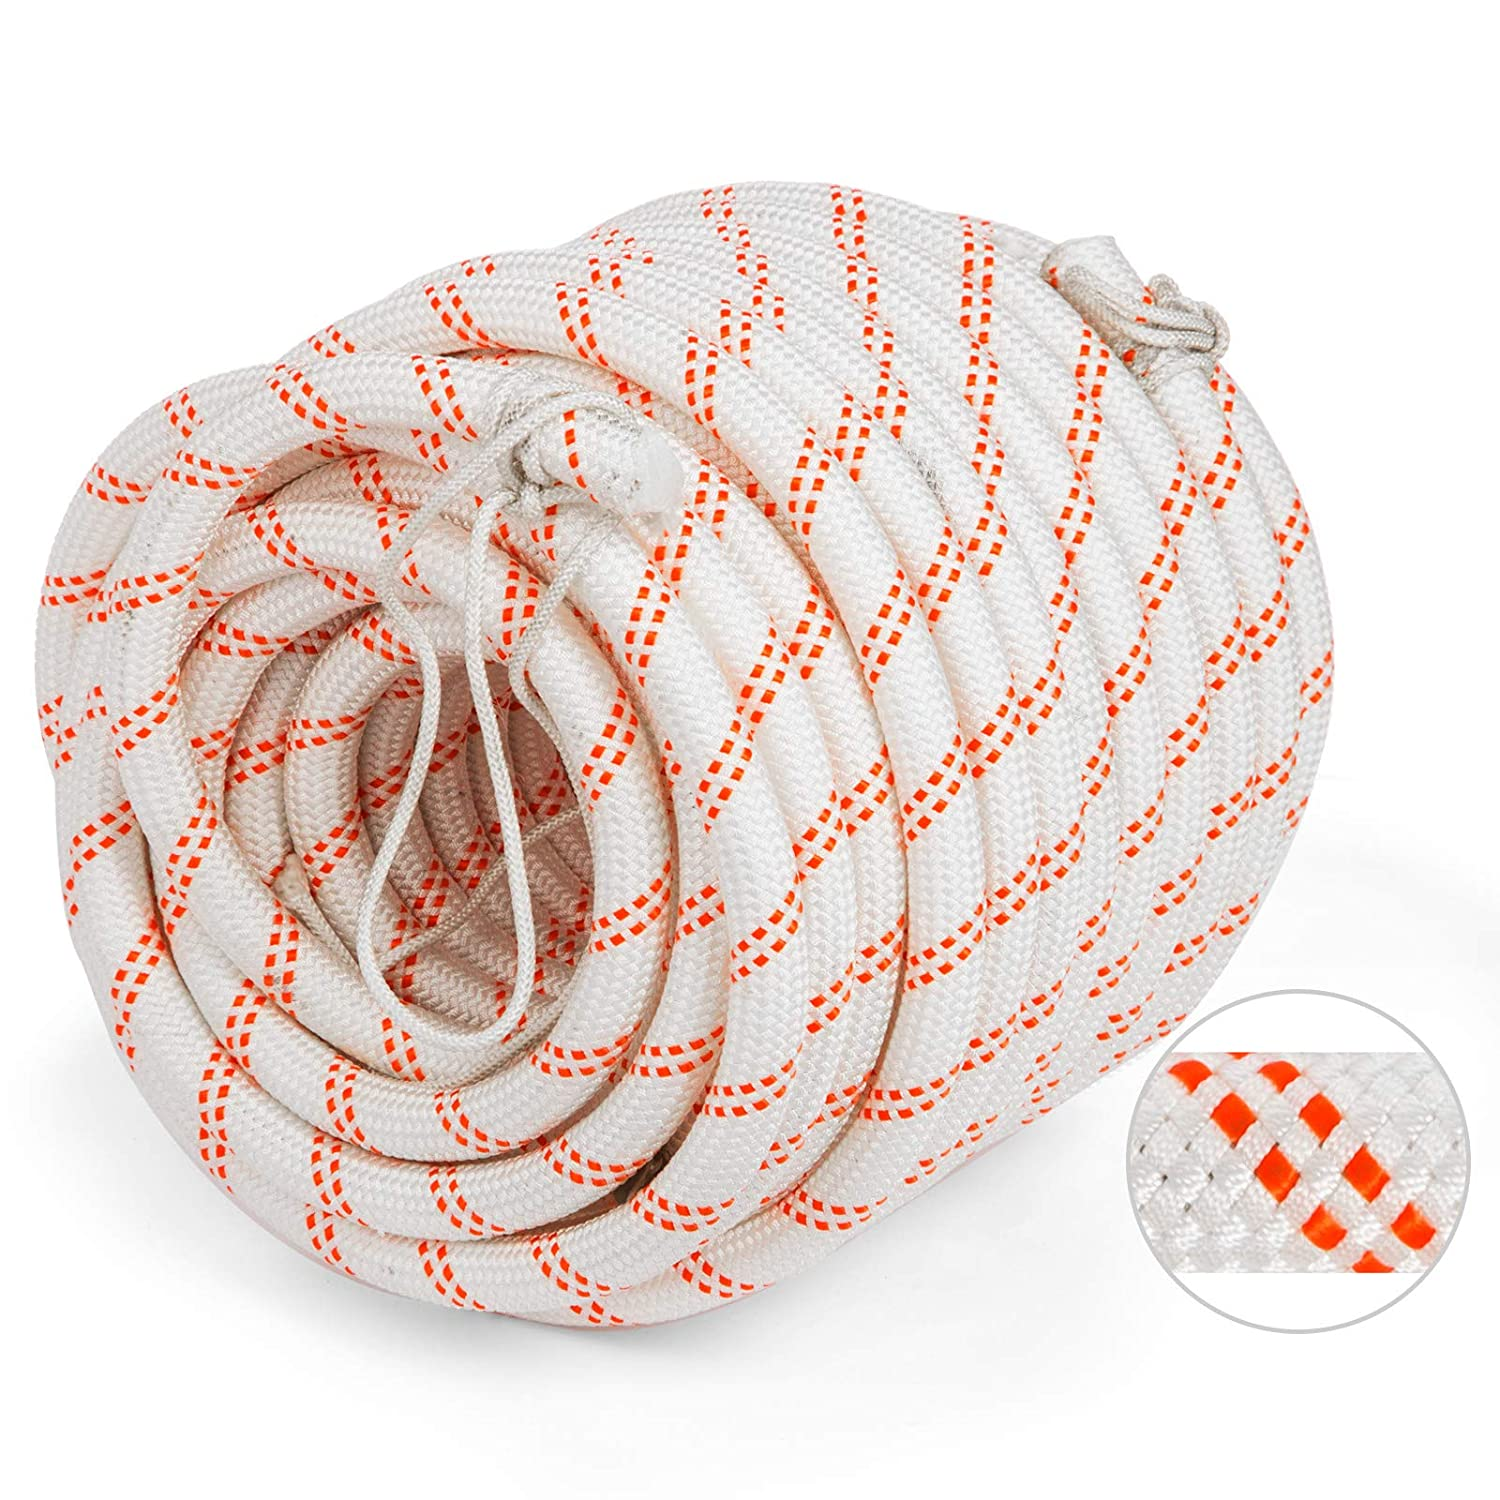 1//2 Inch-150Feet Mophorn 1//2 Inch Double Braid Polyester Rope 150 Feet Nylon Pulling Rope 880LB High Force Polyester Load Sailing Rope for Arborist Gardening Marine